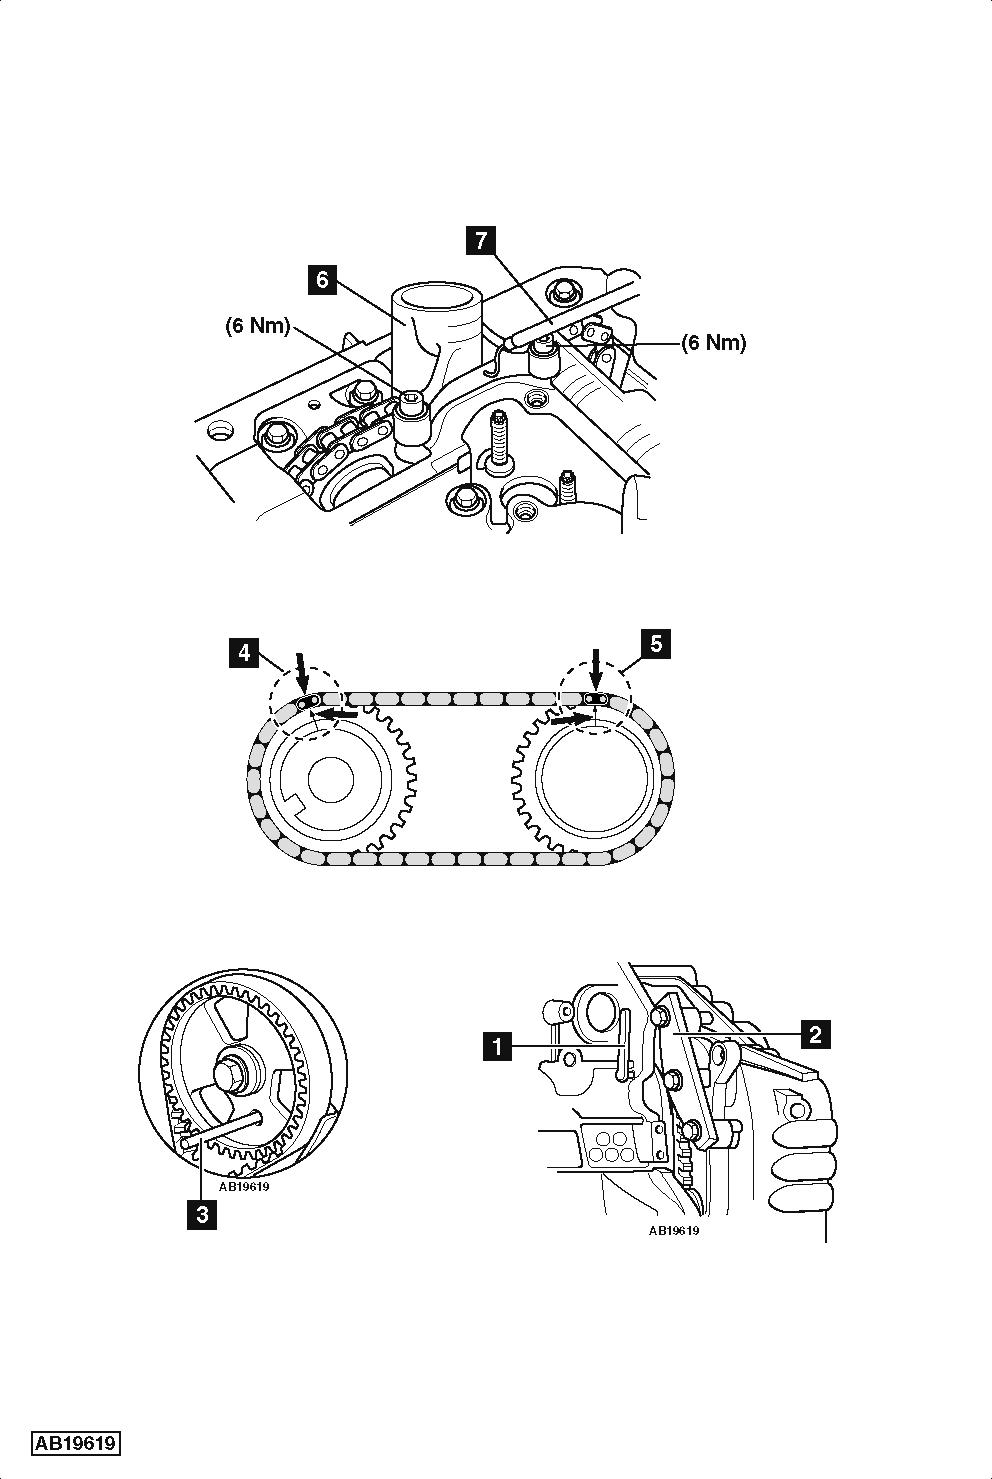 Distribucion De Un Cadilac V8 46 furthermore 2001 5 4 Sohc P I Heads Timing Marks 19196 likewise RepairGuideContent as well How To Replace Timing Chain On Ford Ranger 3 2d Tdi 2011 14 additionally 123783 3 0 Broken Timing Chain. on ford 4 6 timing chain marks